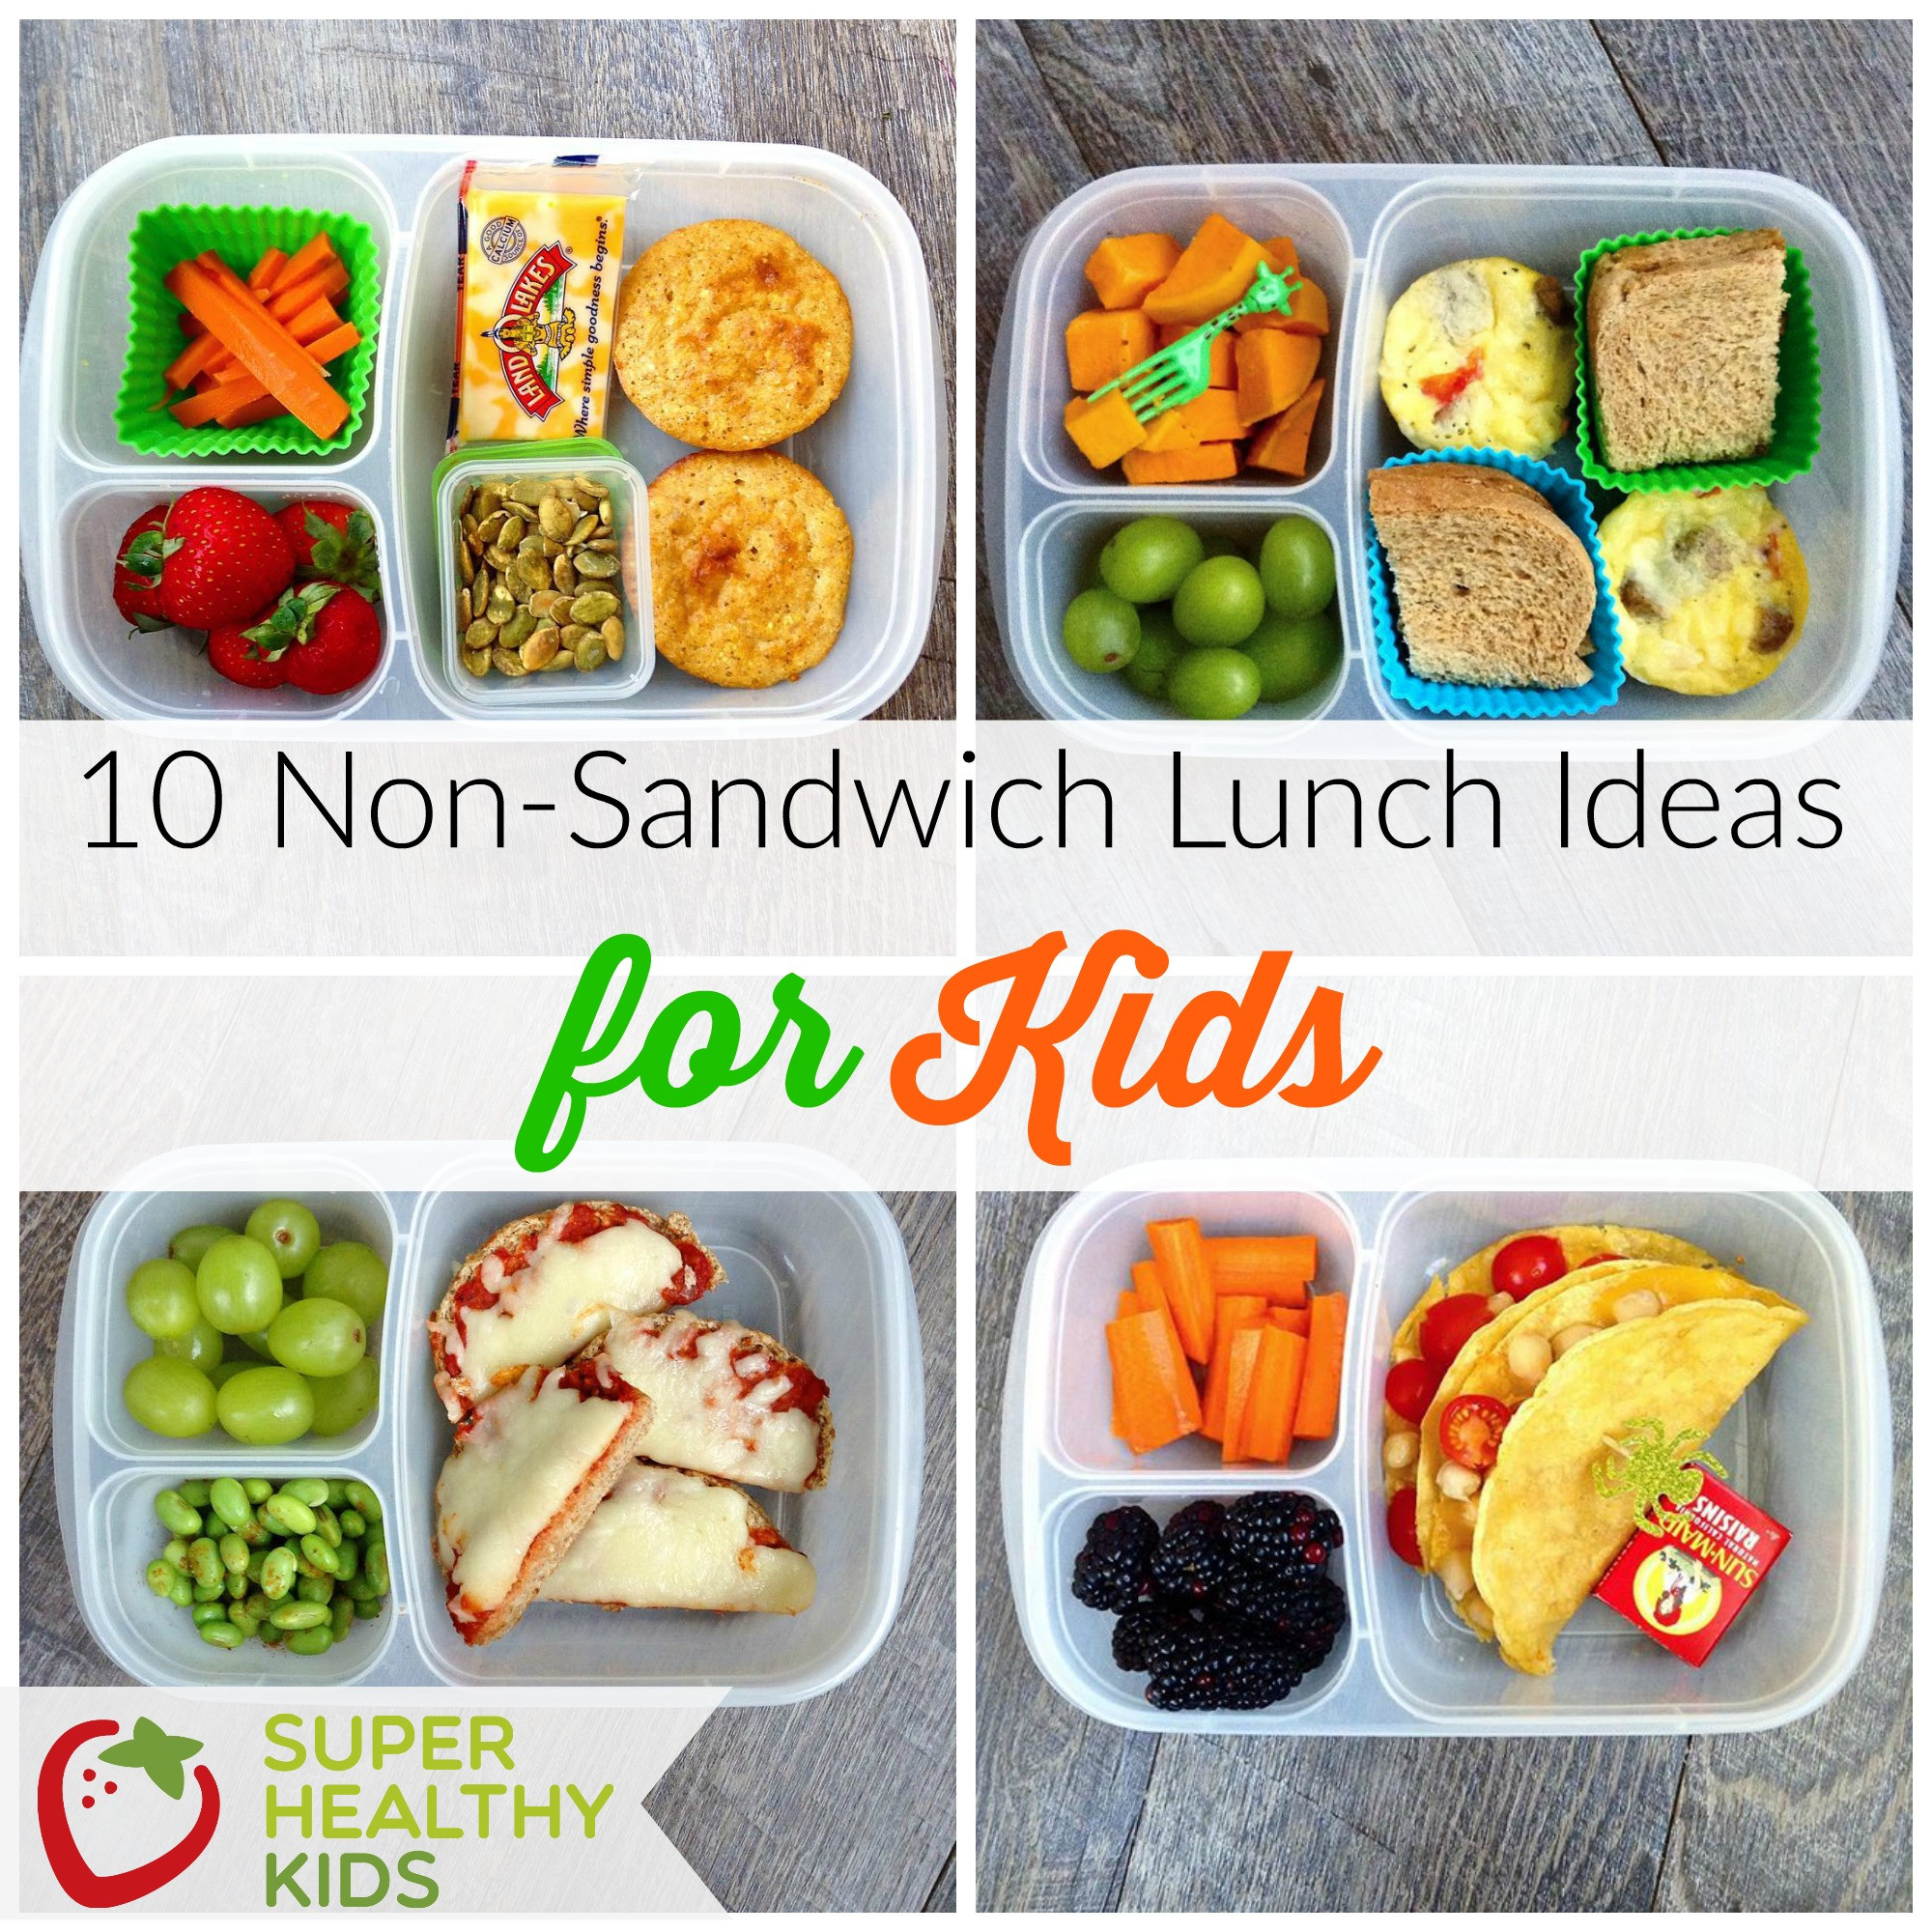 Healthy Snacks To Pack For Lunch  10 Non Sandwich Lunch Ideas for Kids